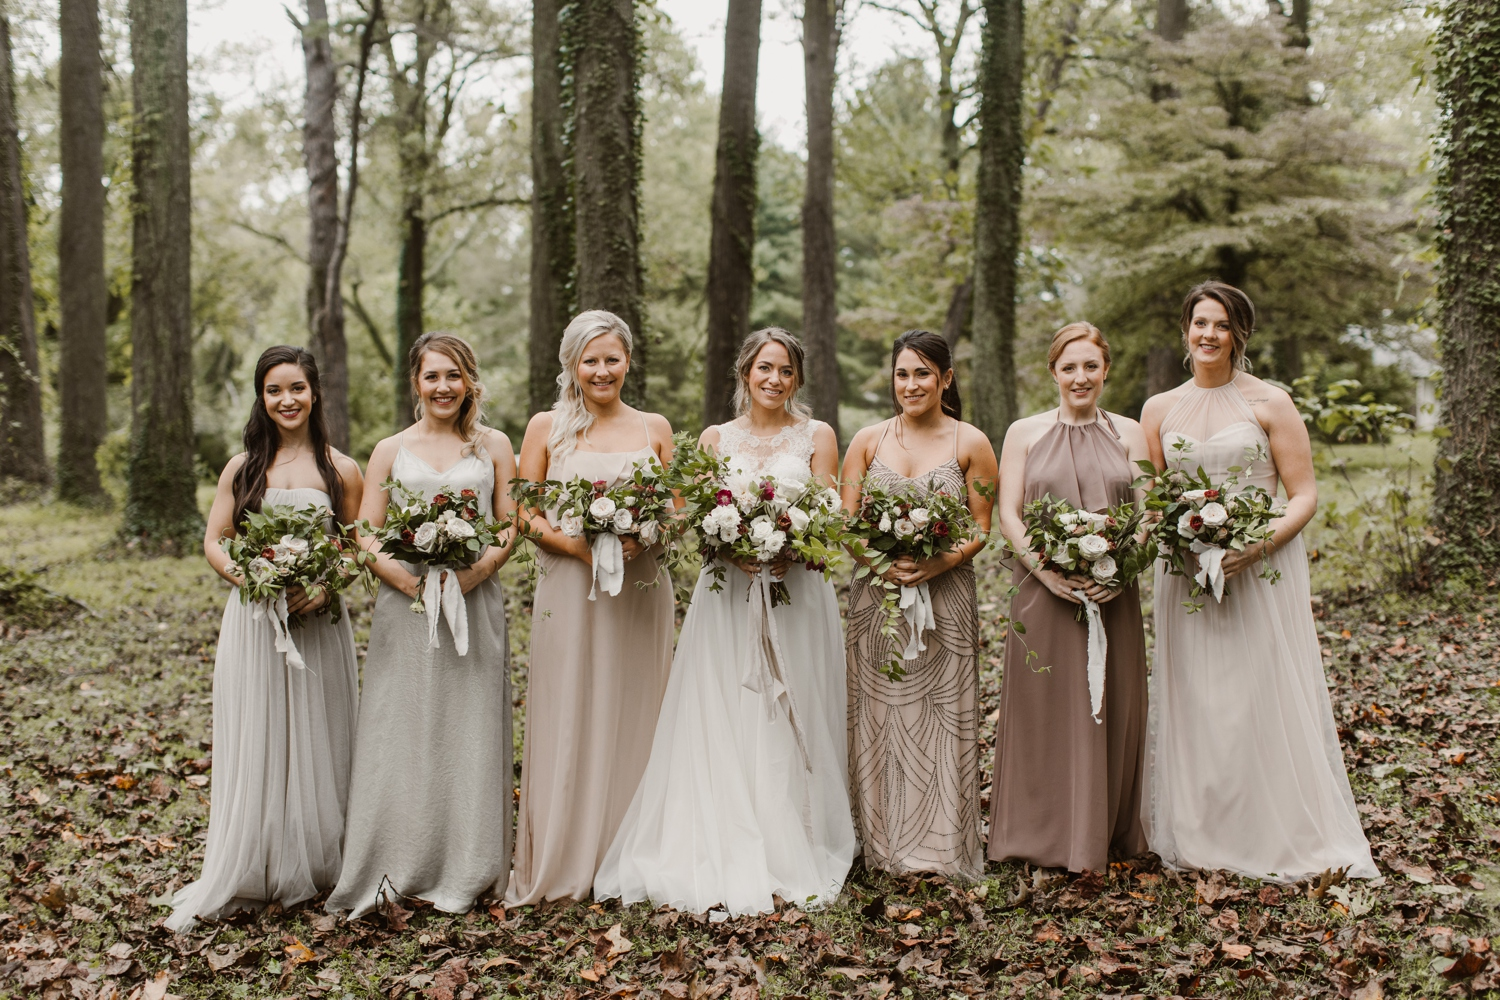 Baltimore wedding photographer outdoor Maryland wedding ceremony   forest earthy Annapolis wedding   outdoors bridesmaids portraits